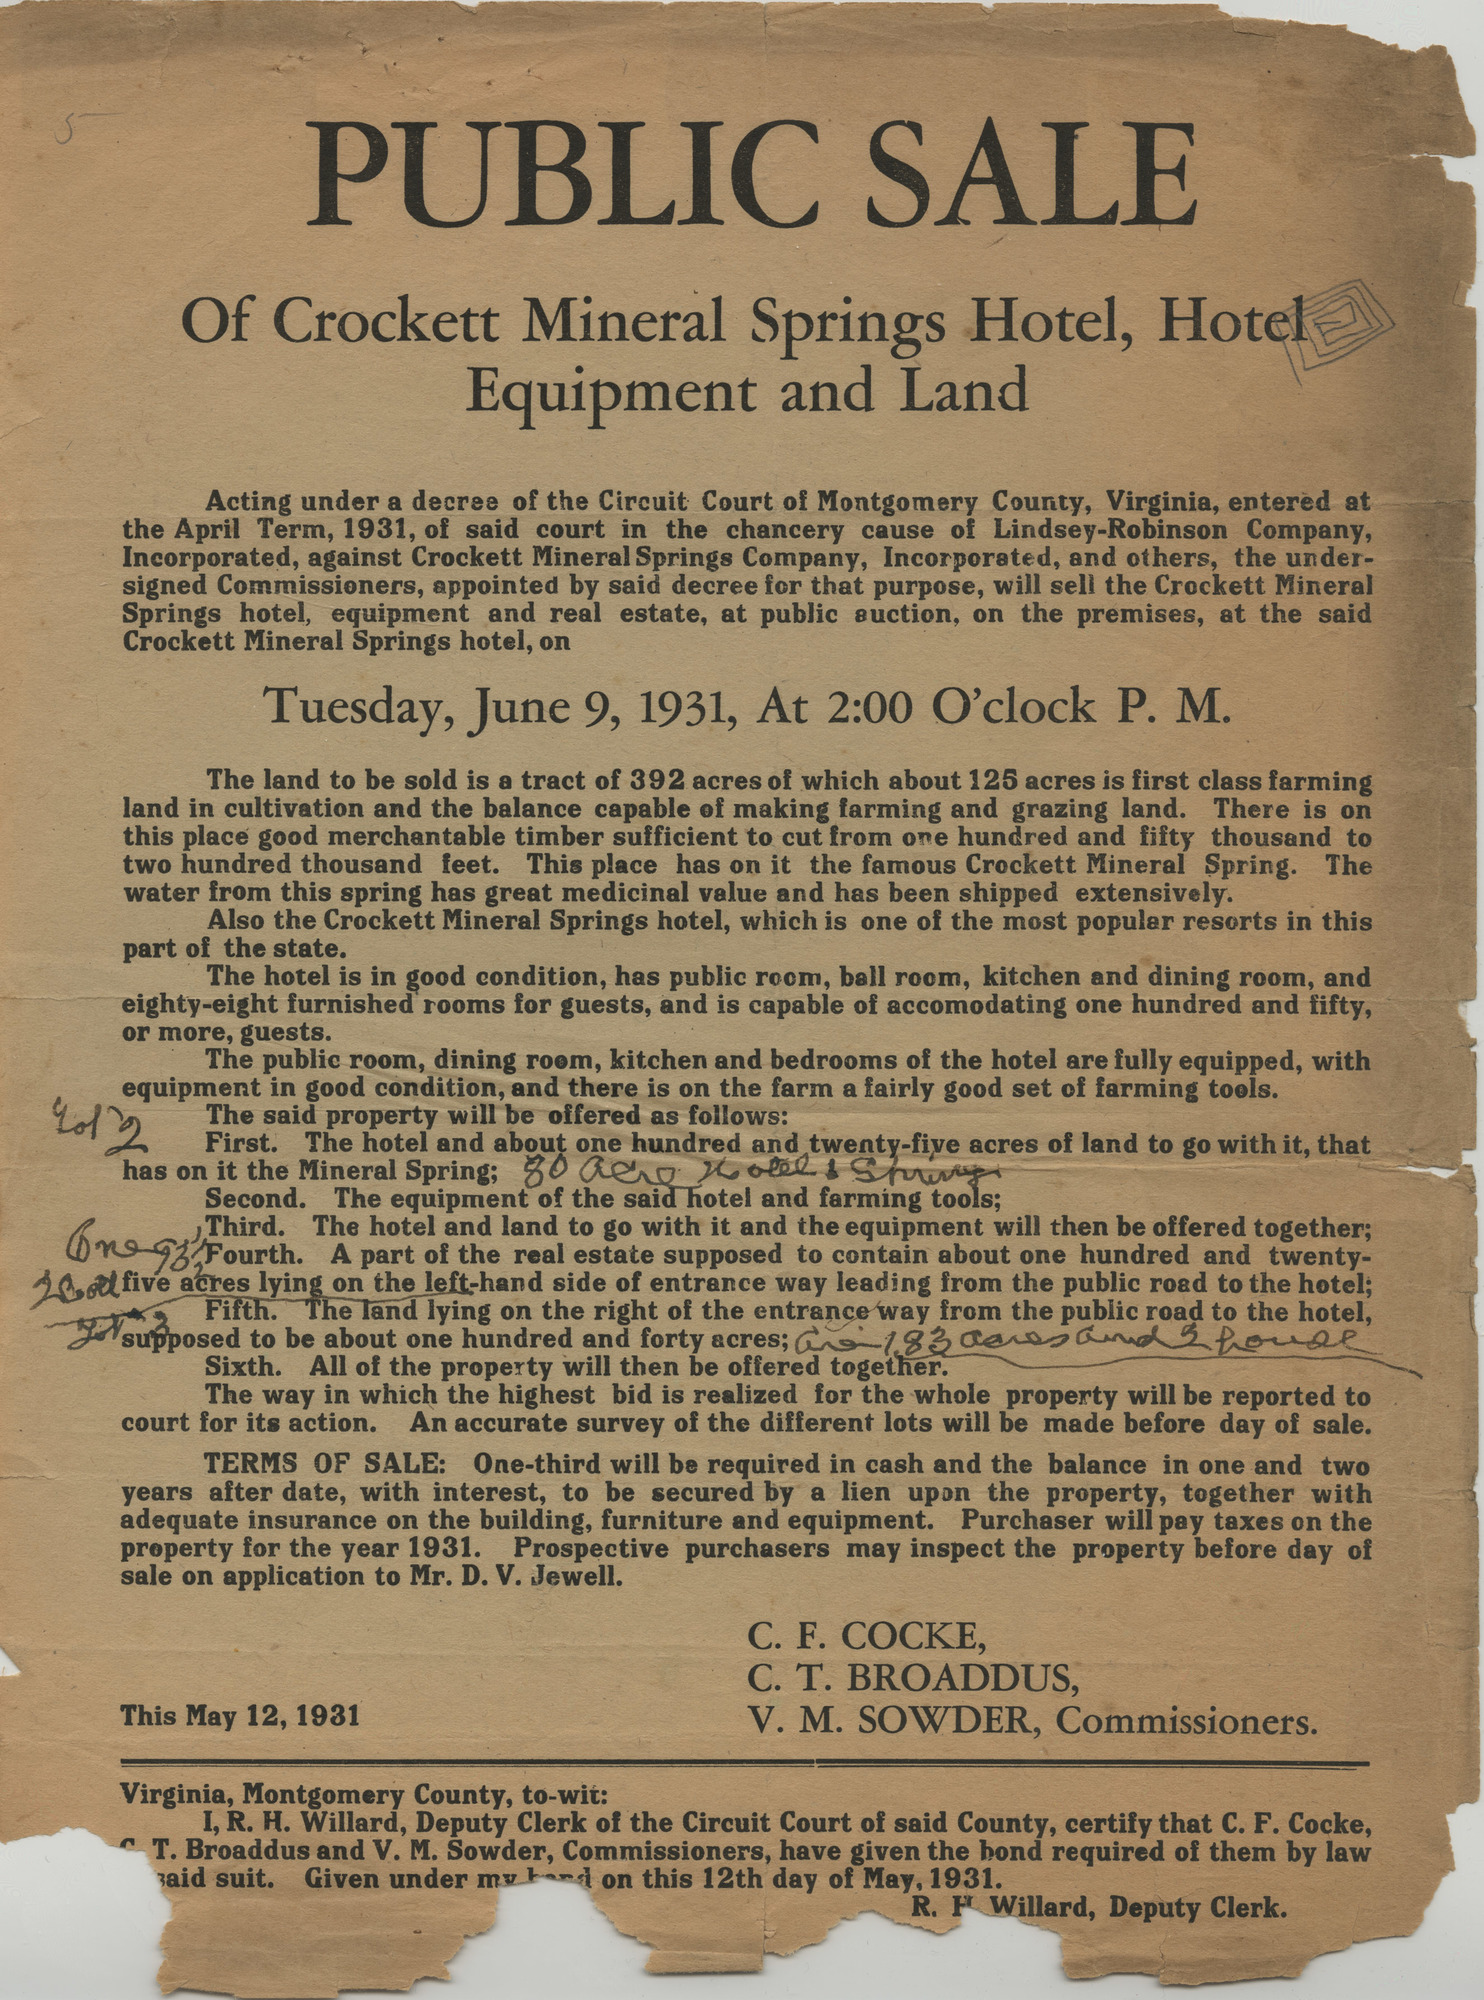 Ms2009-105_CrockettMineralSprings_Broadside.jpg